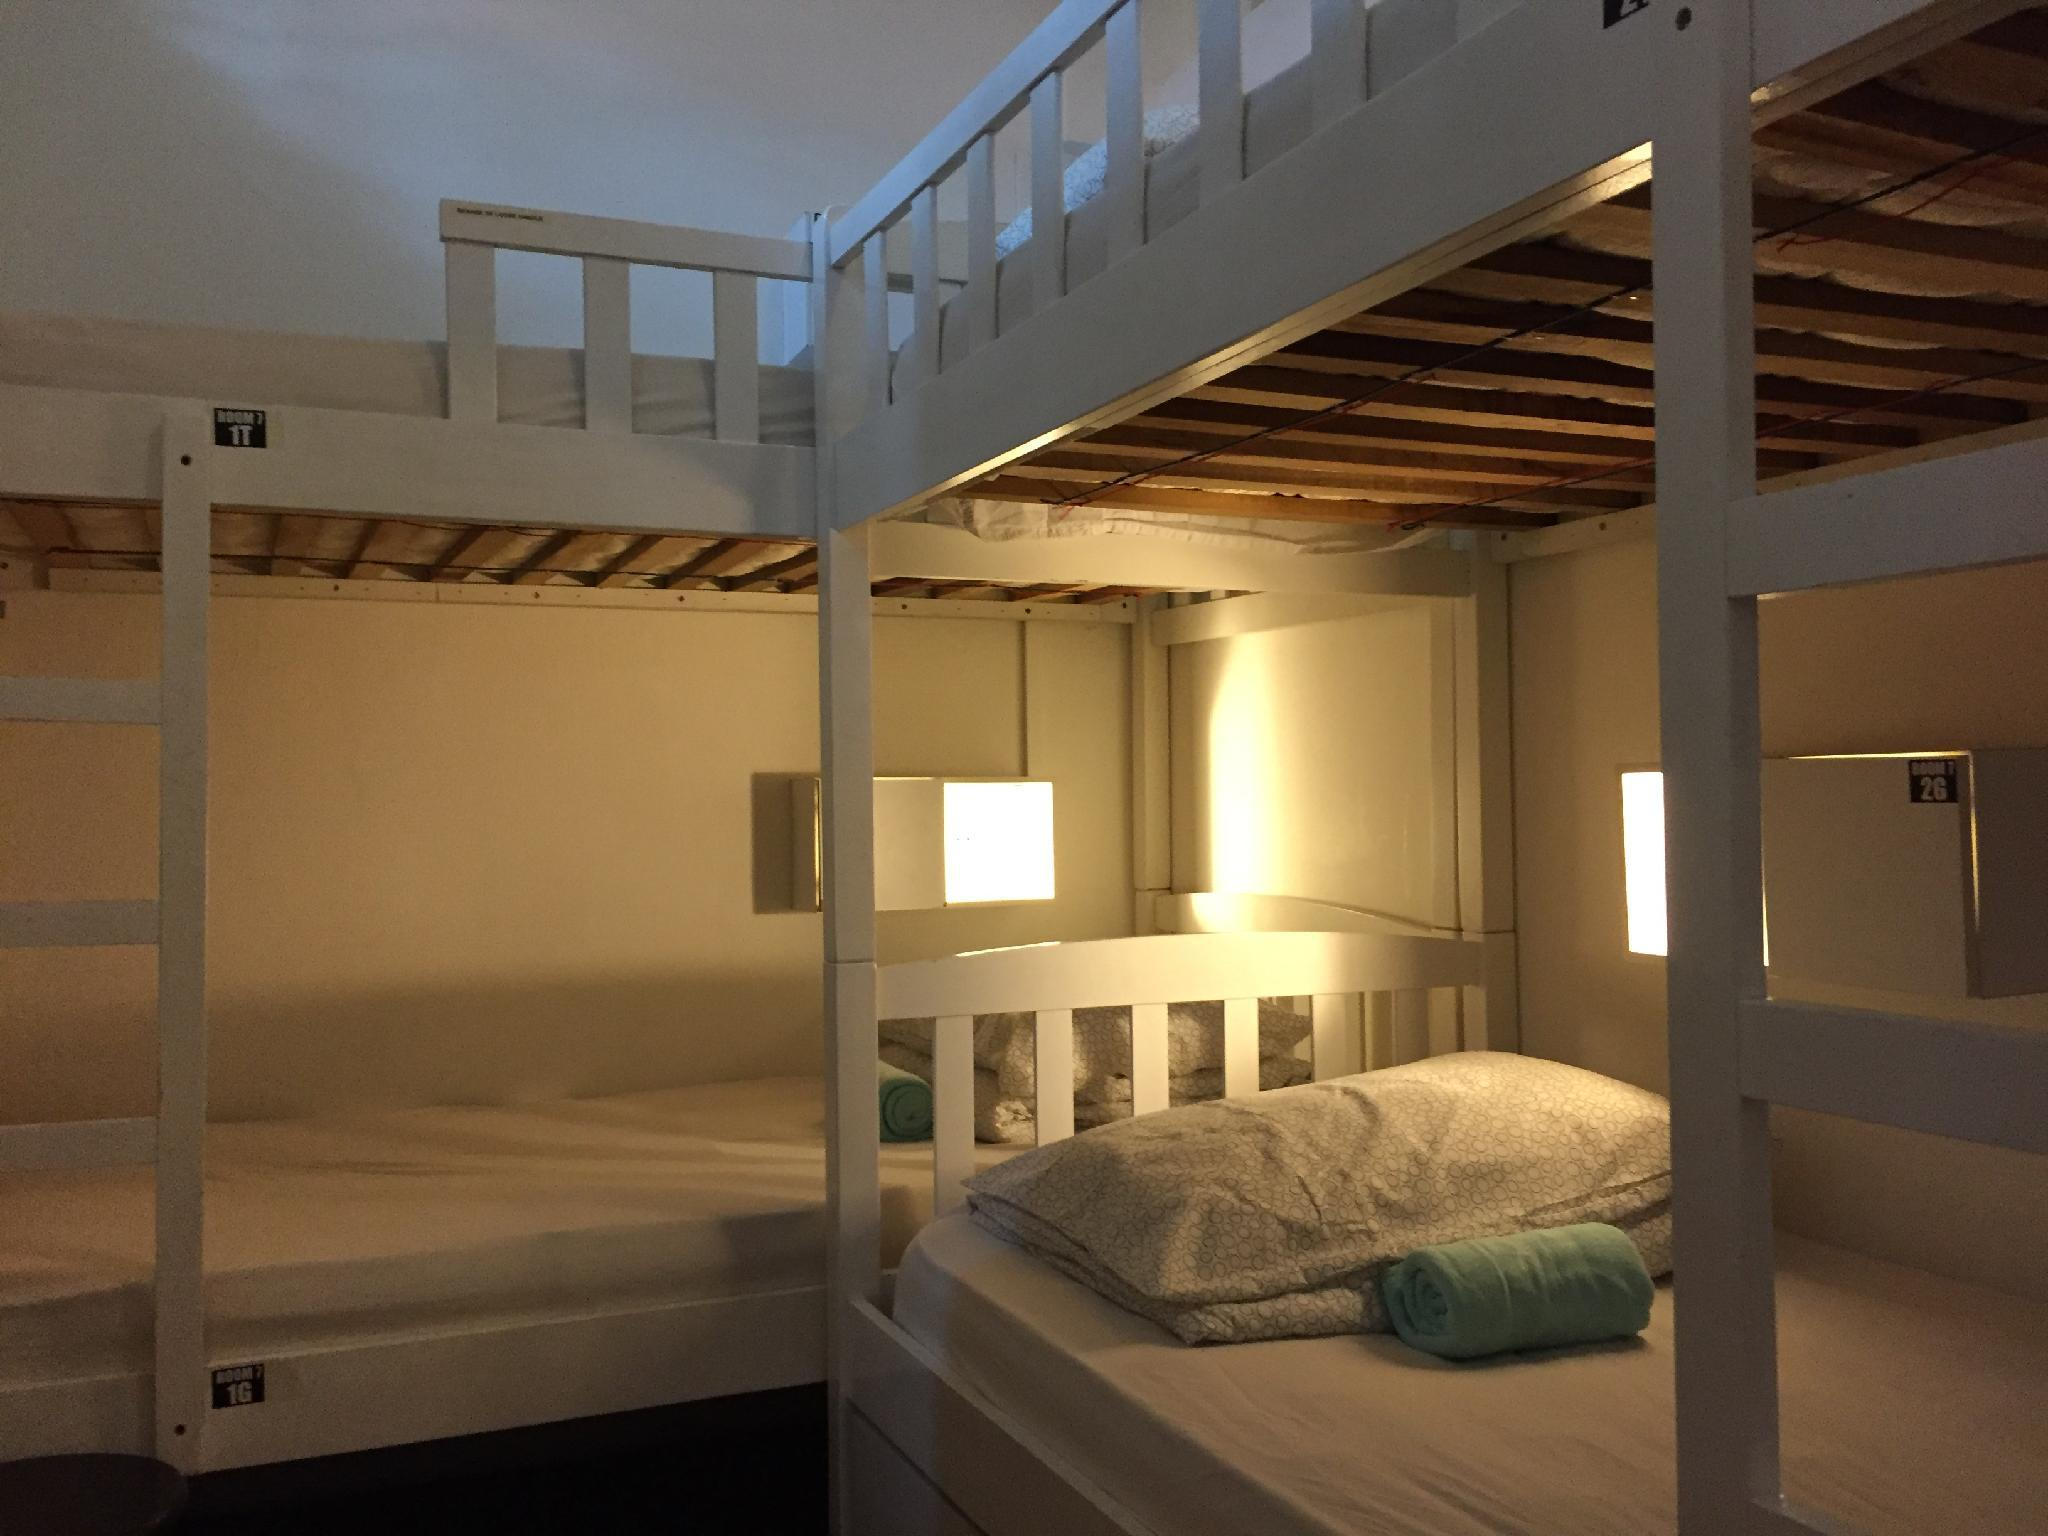 Private Room for 4 People with Bunk Bed